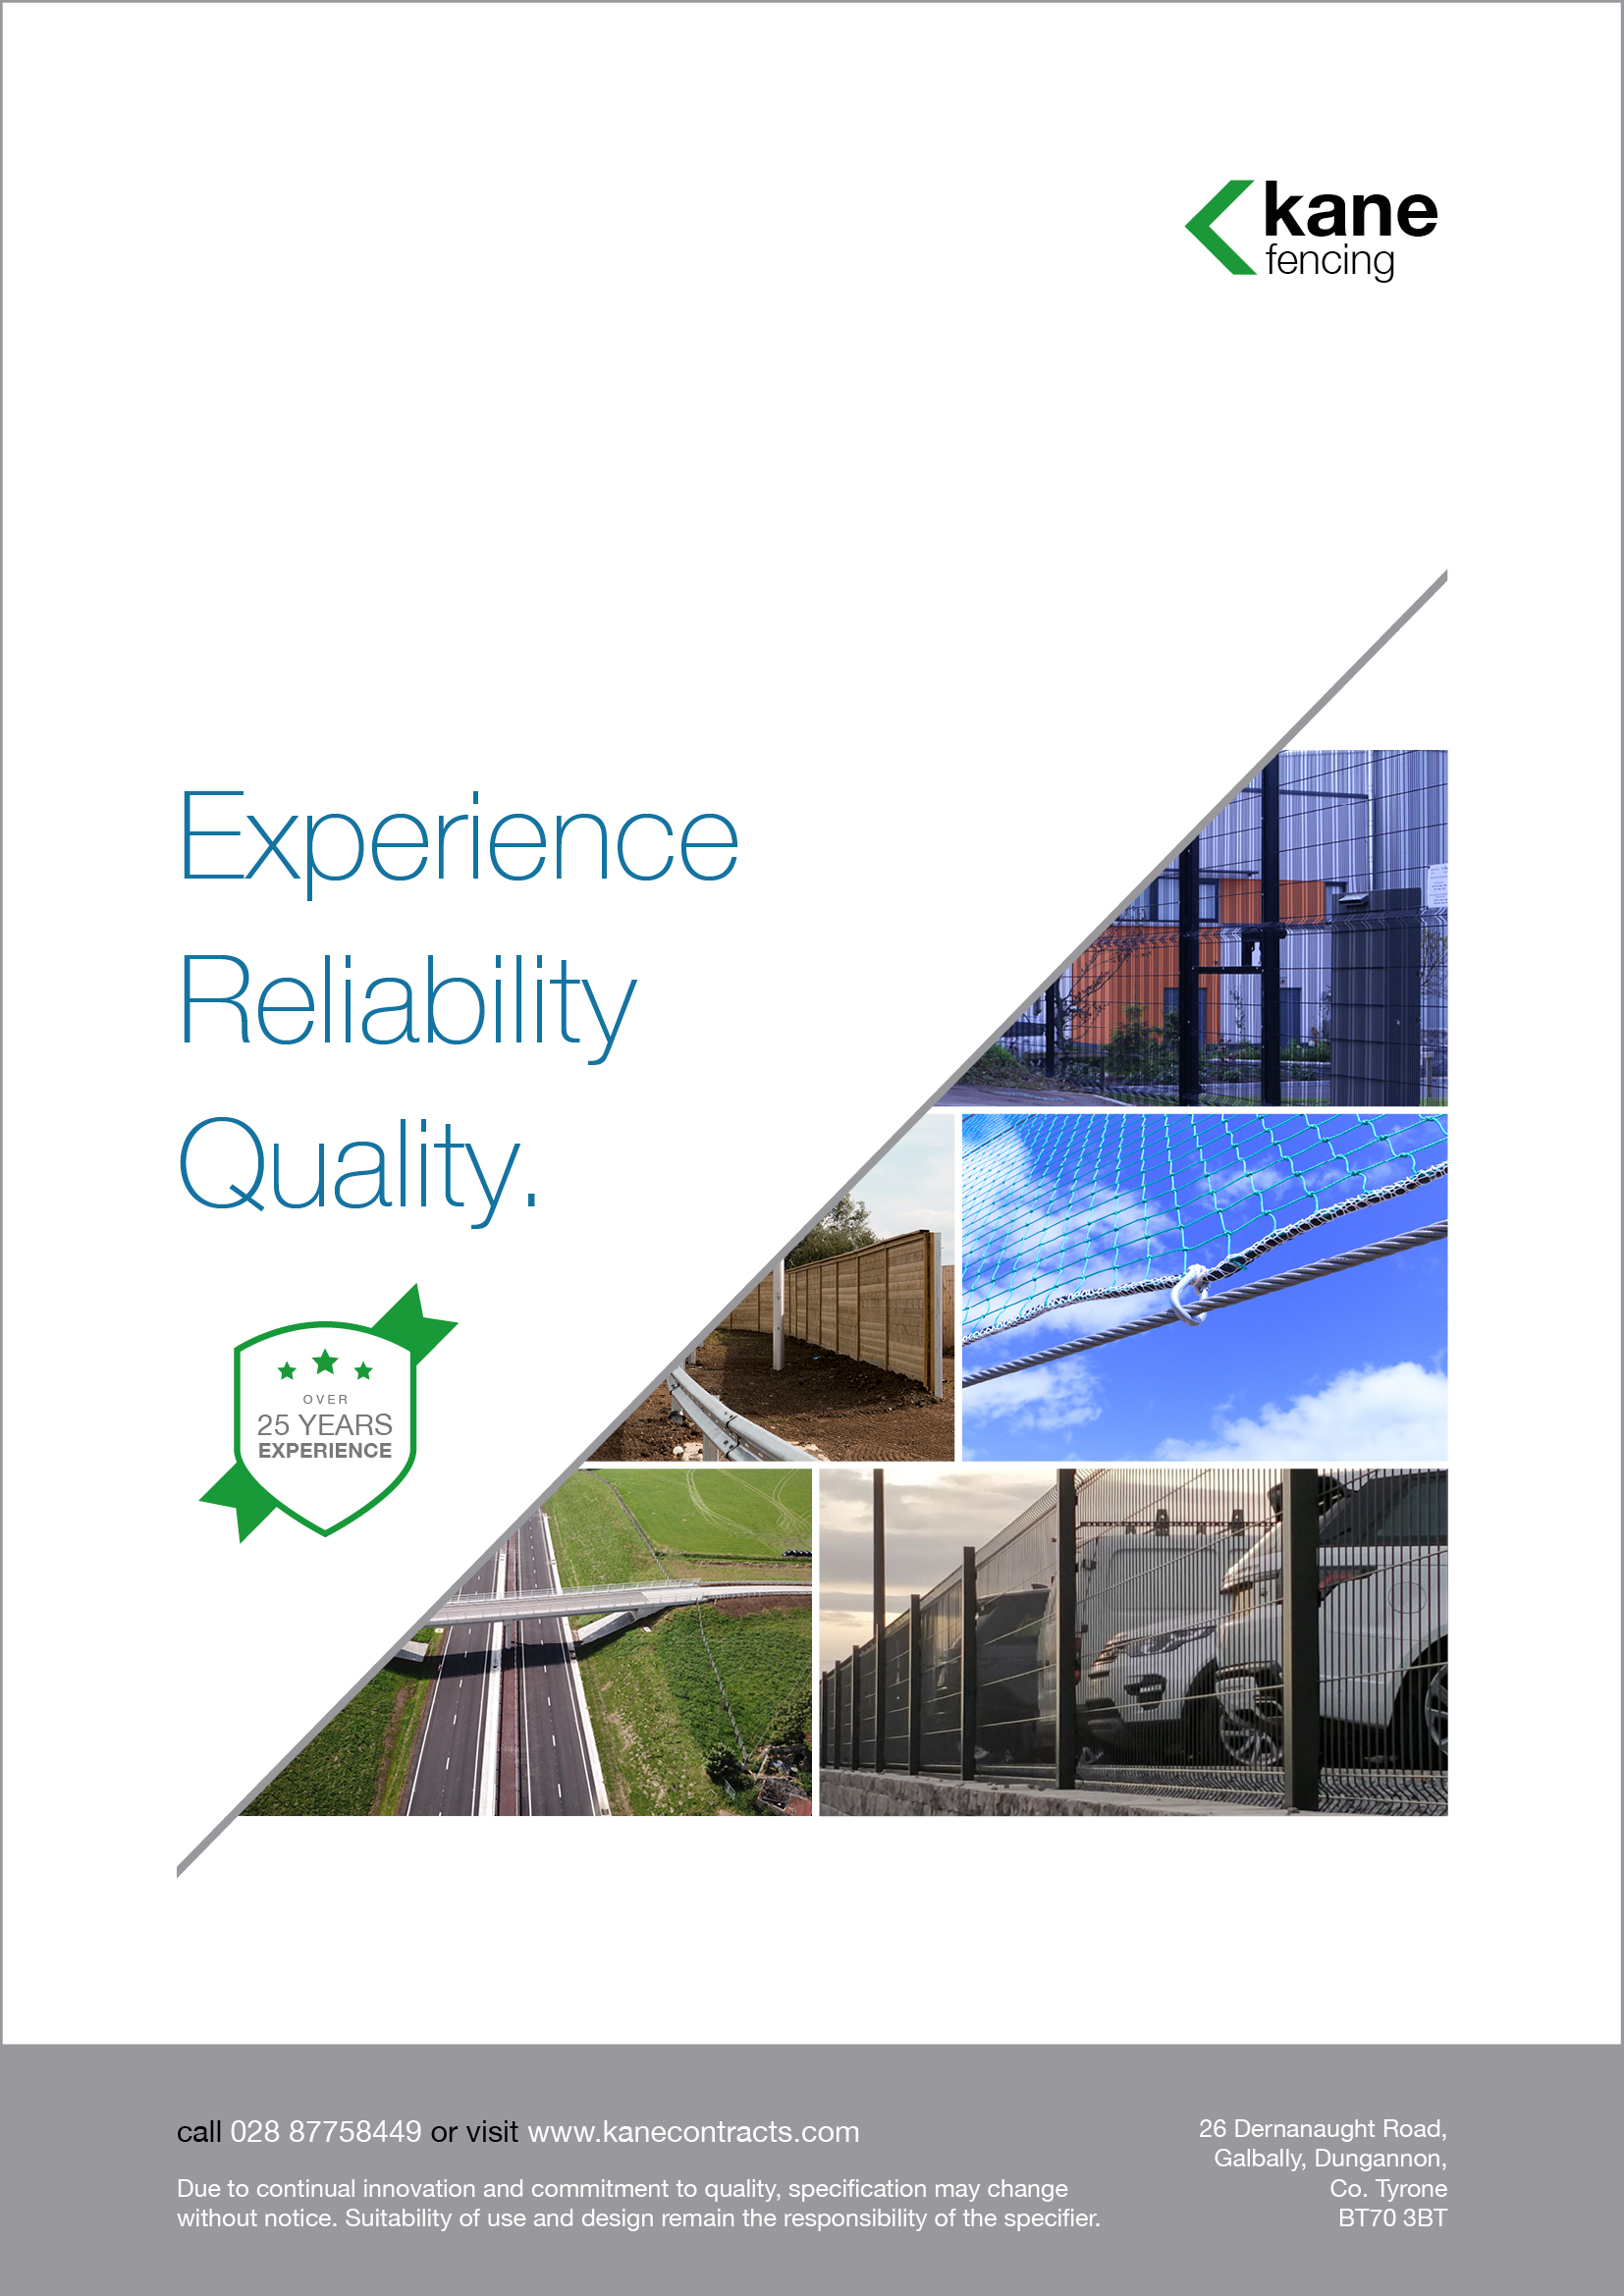 Kane Fencing Product Brochure